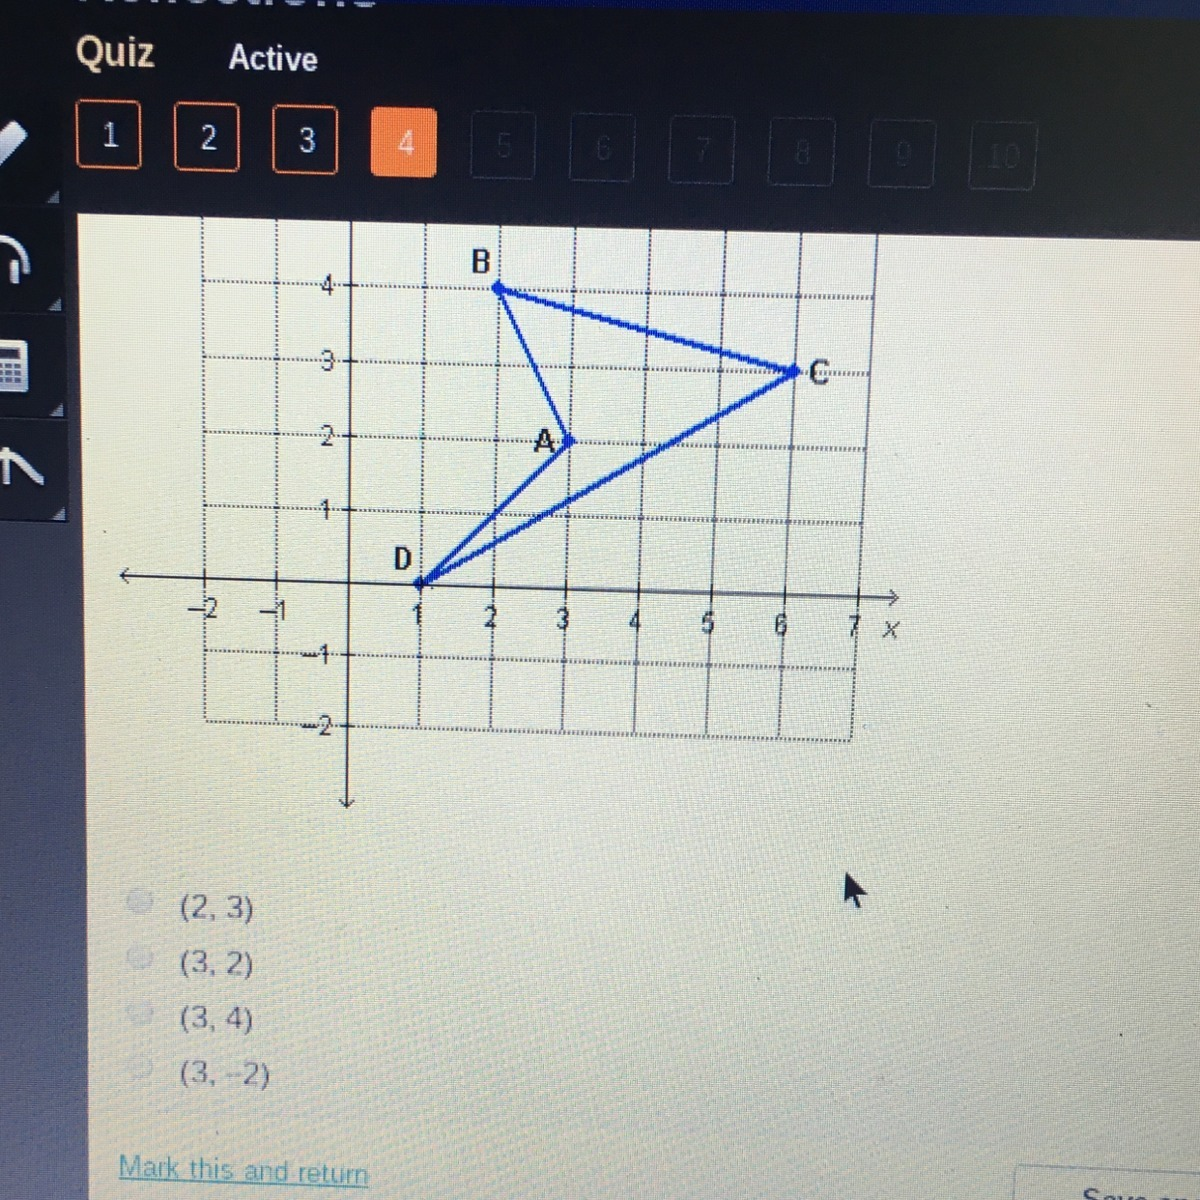 What Are The Coordinates Of A After Reflecting Across The